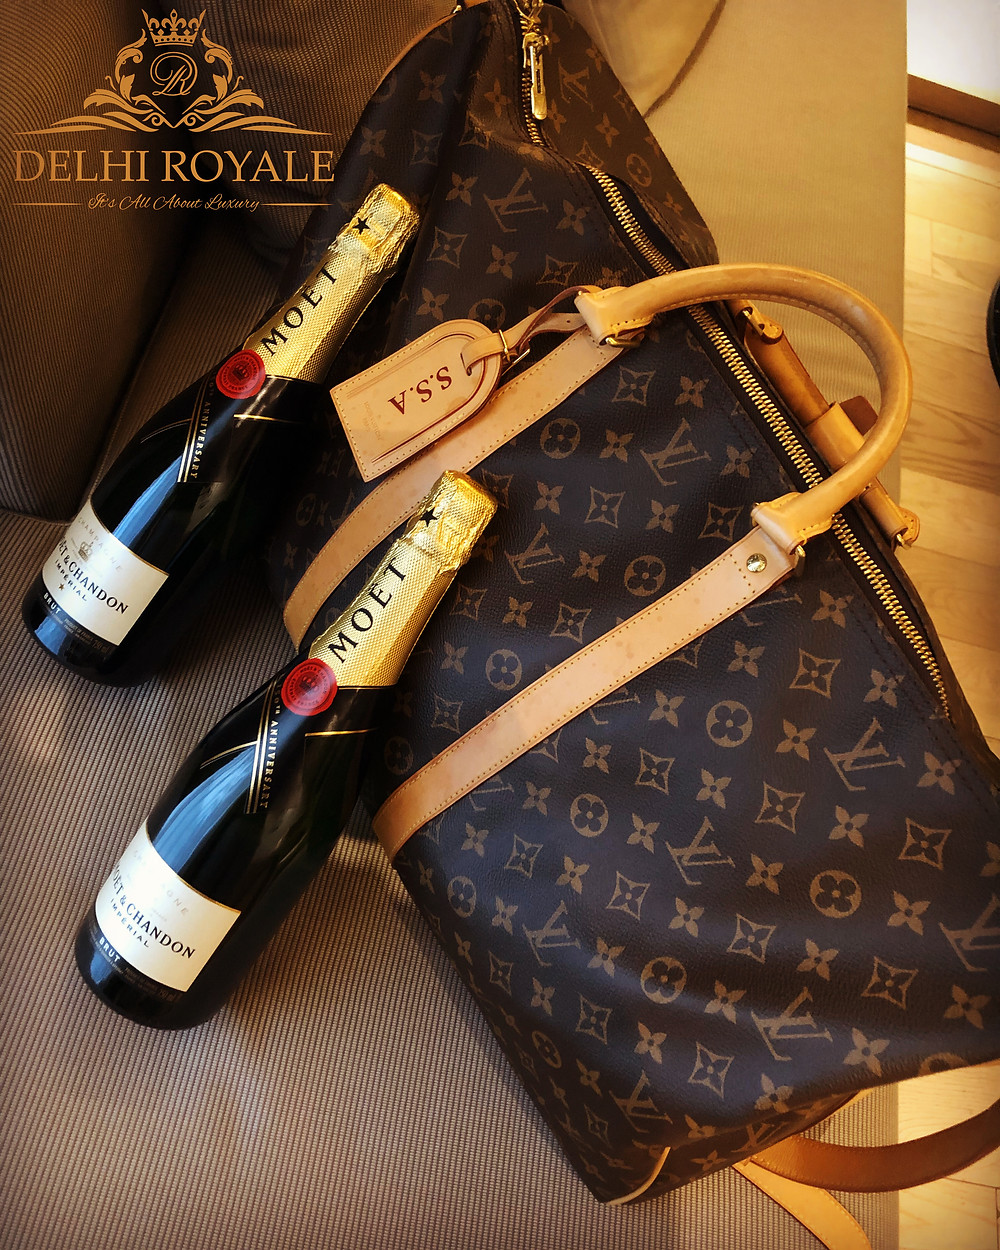 Louis Vuitton Keepall 55 And Moet Champagne